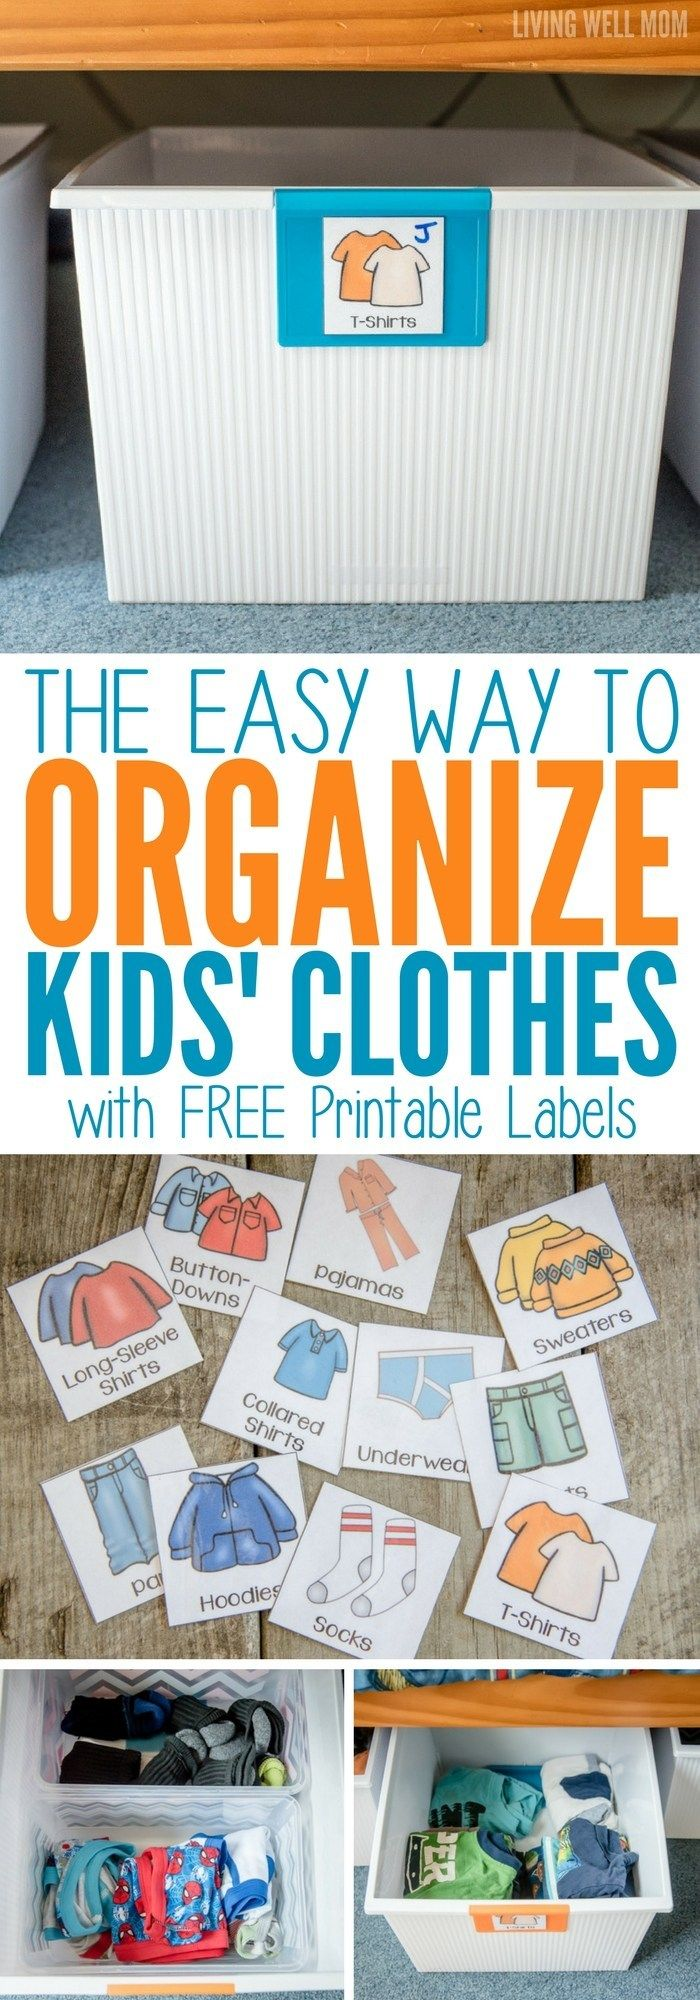 The Easy Way to Organize Kids' Clothes